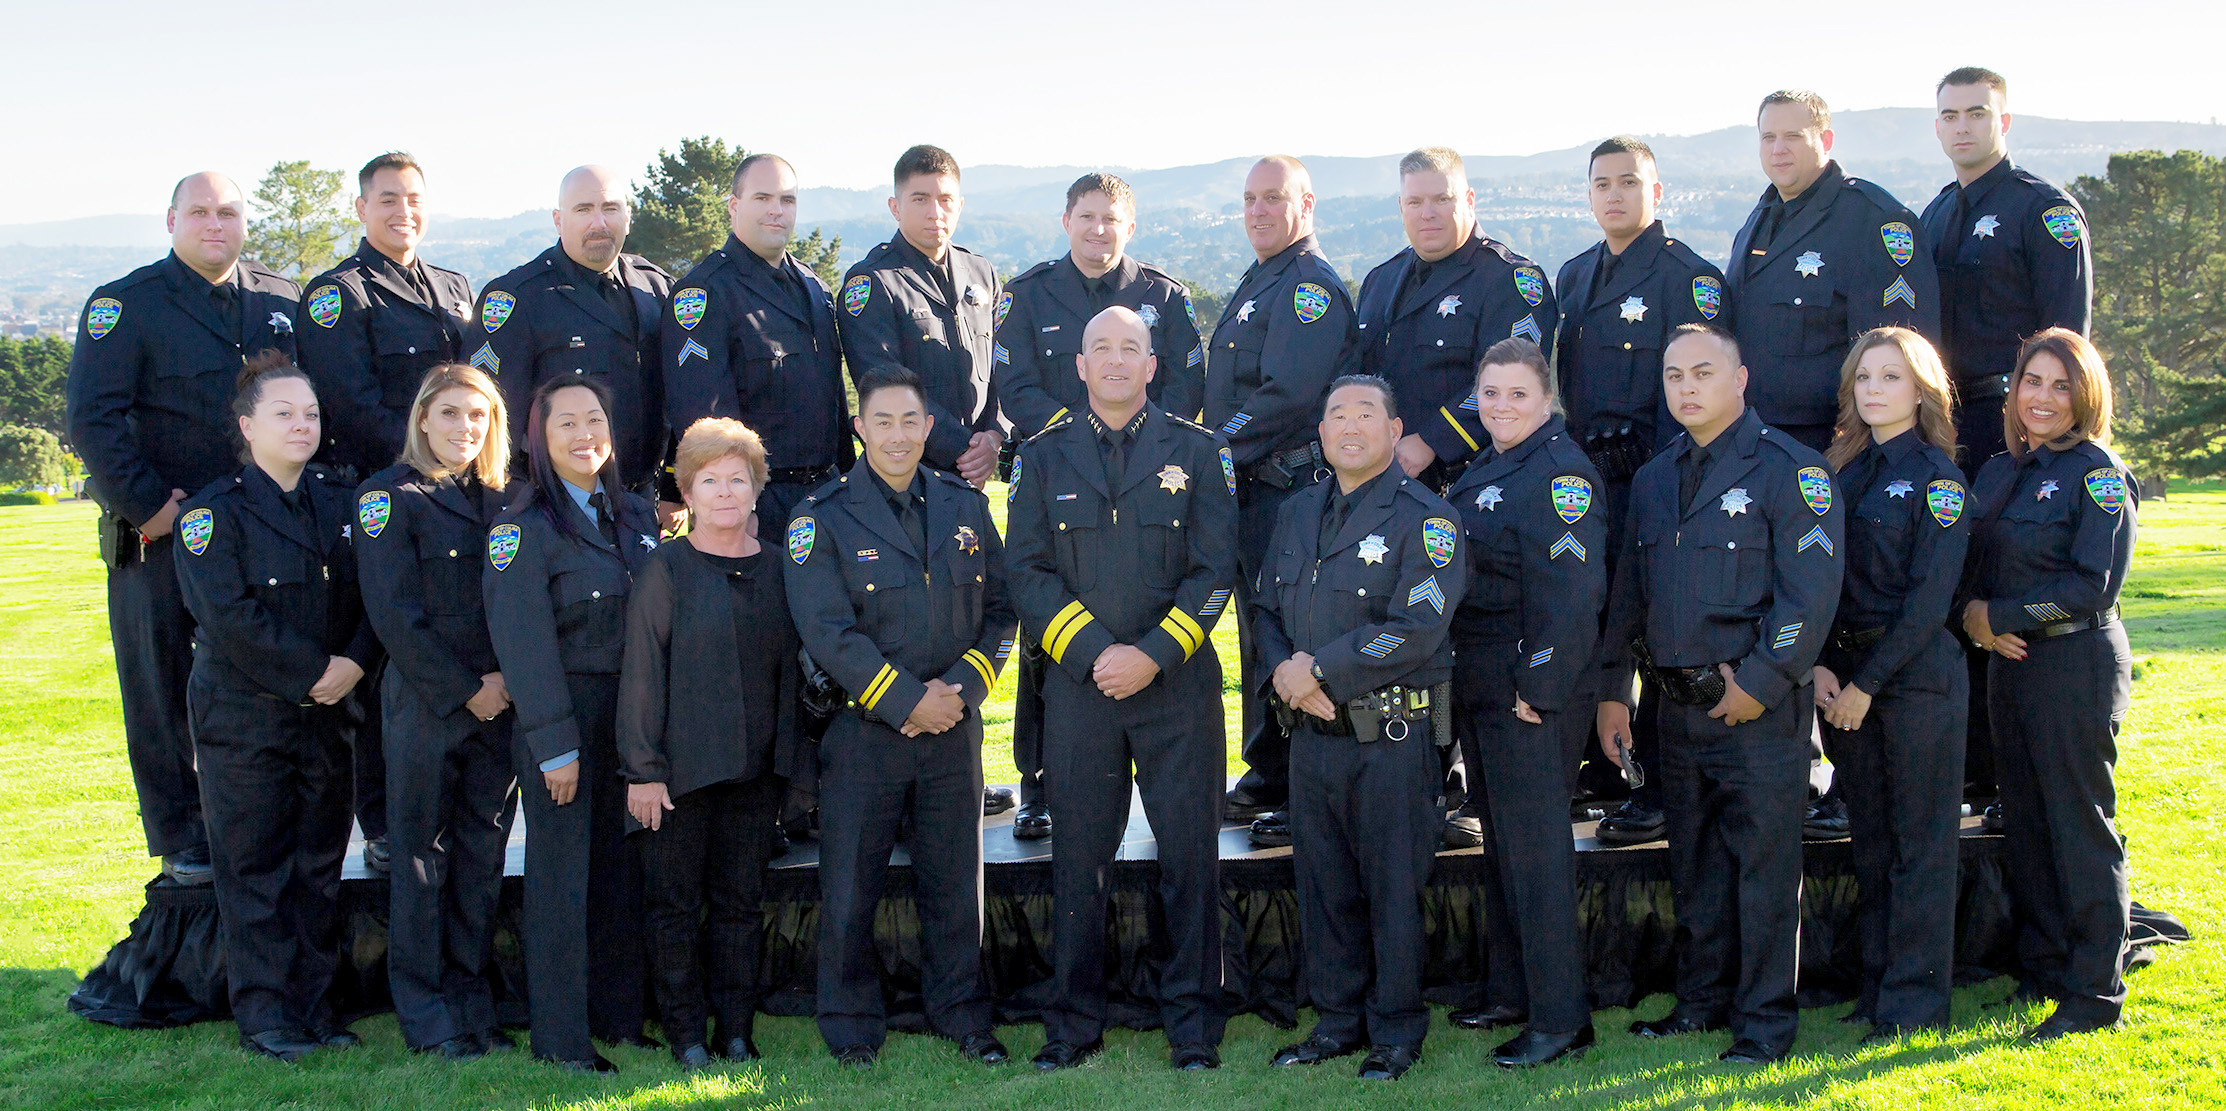 Colma Police Department Group Photo